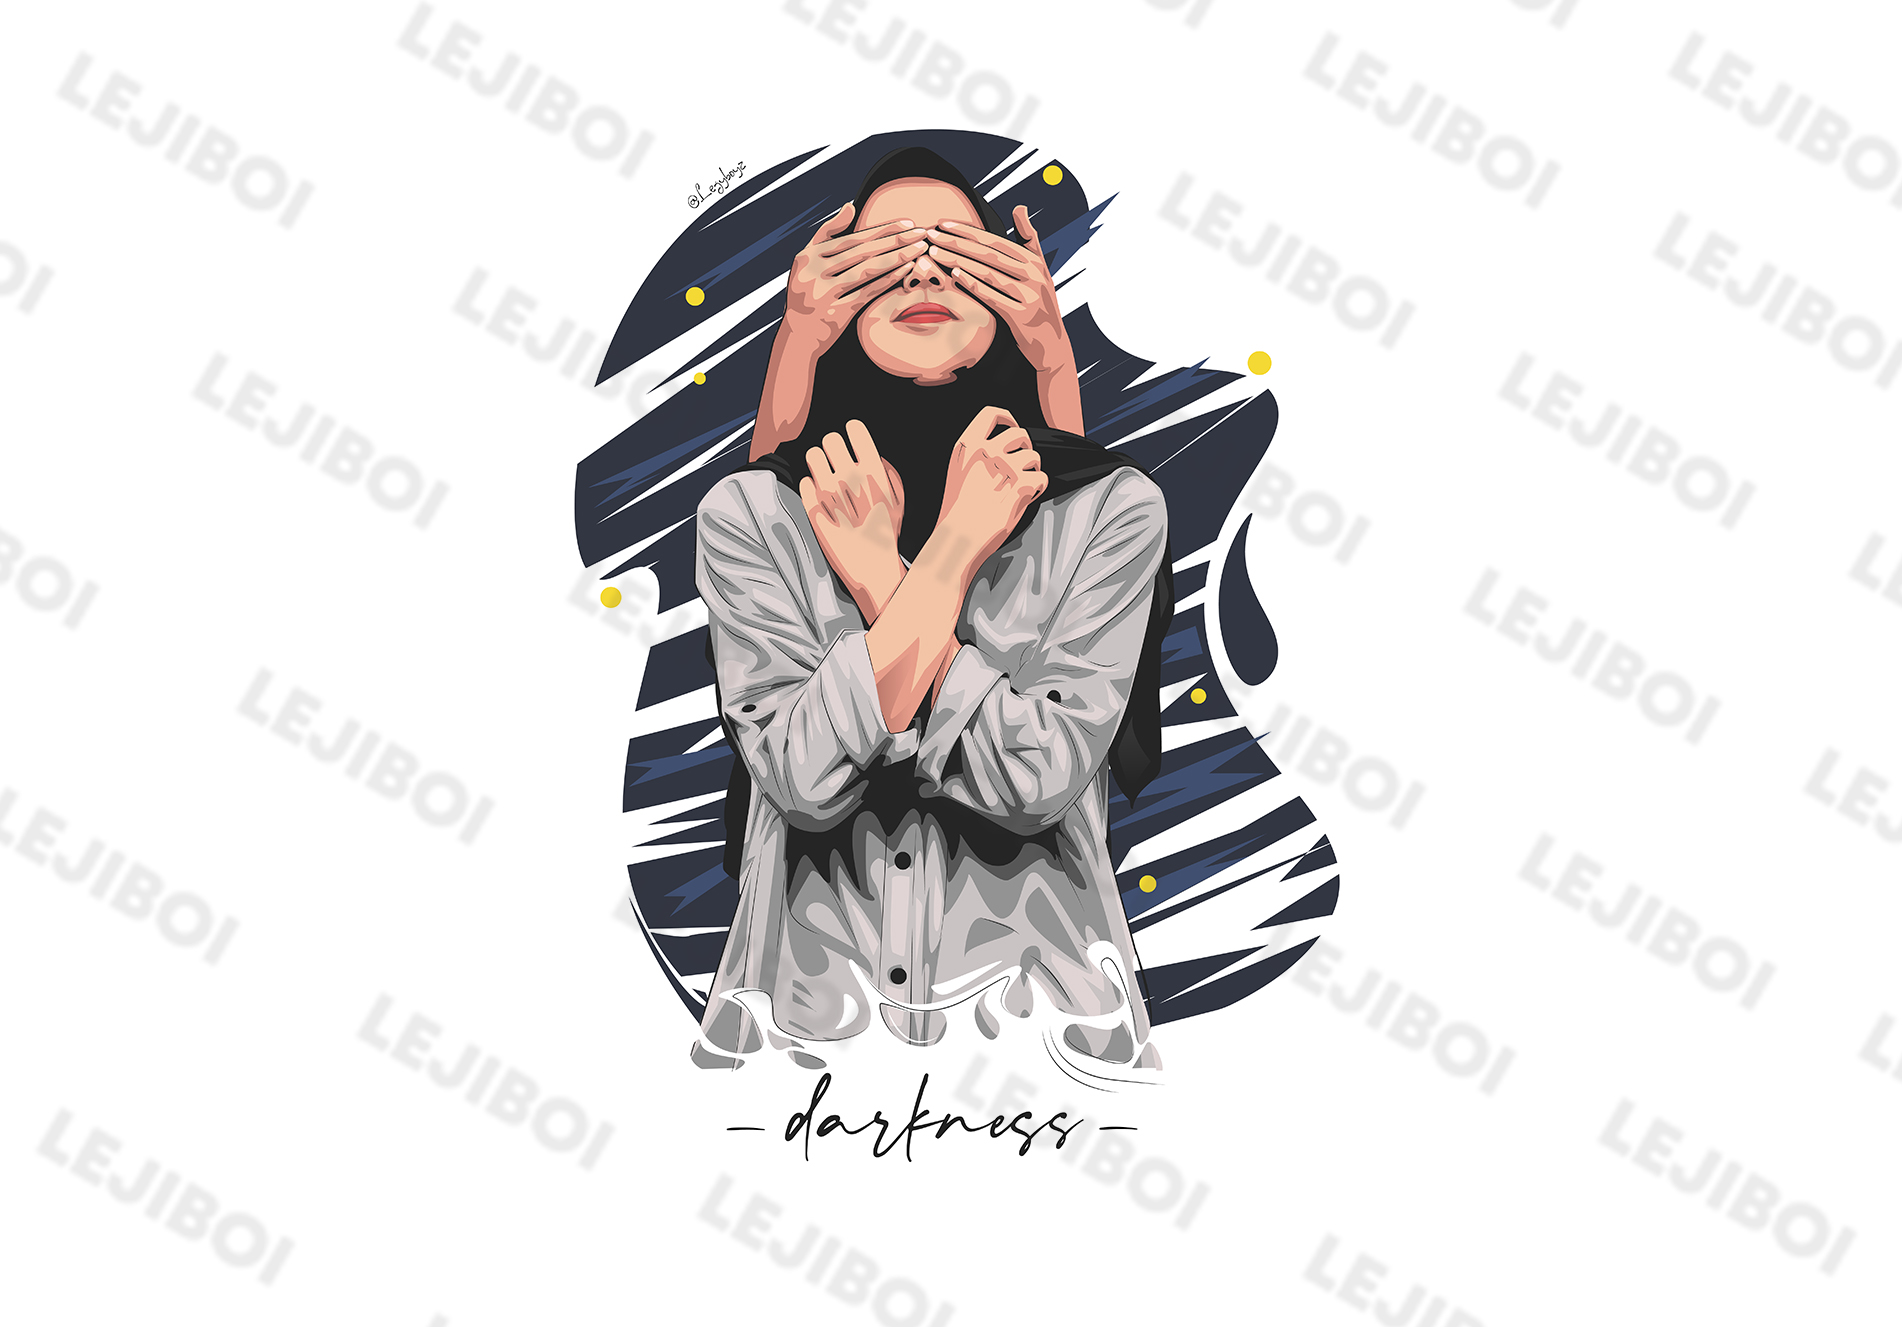 I Can Make Vector Portrait Ilustration Kind This Style From Your Picture With No Watermark